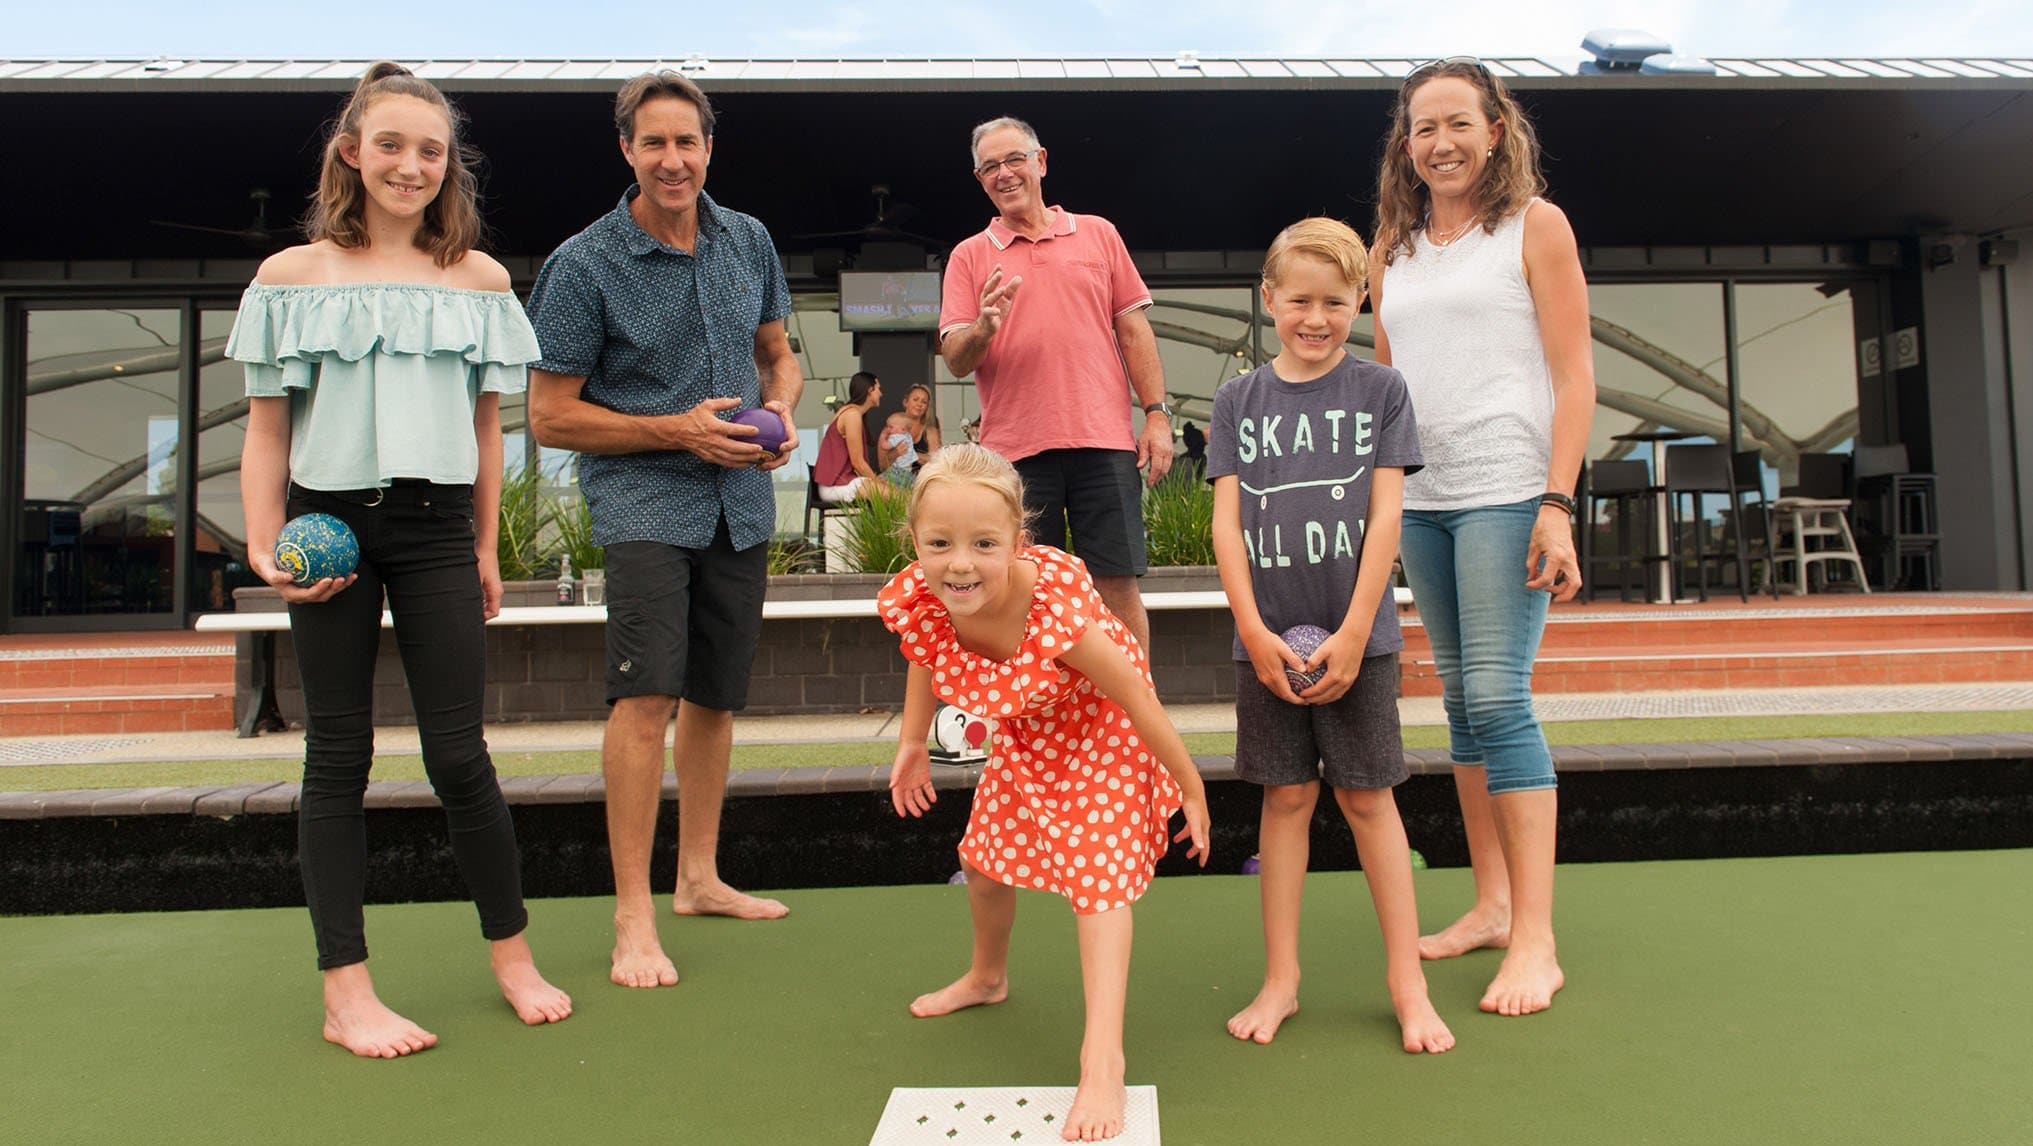 family lawn bowls, the greens, family barefoot bowls, barefoot bowls, kids bowling, moama bowling club